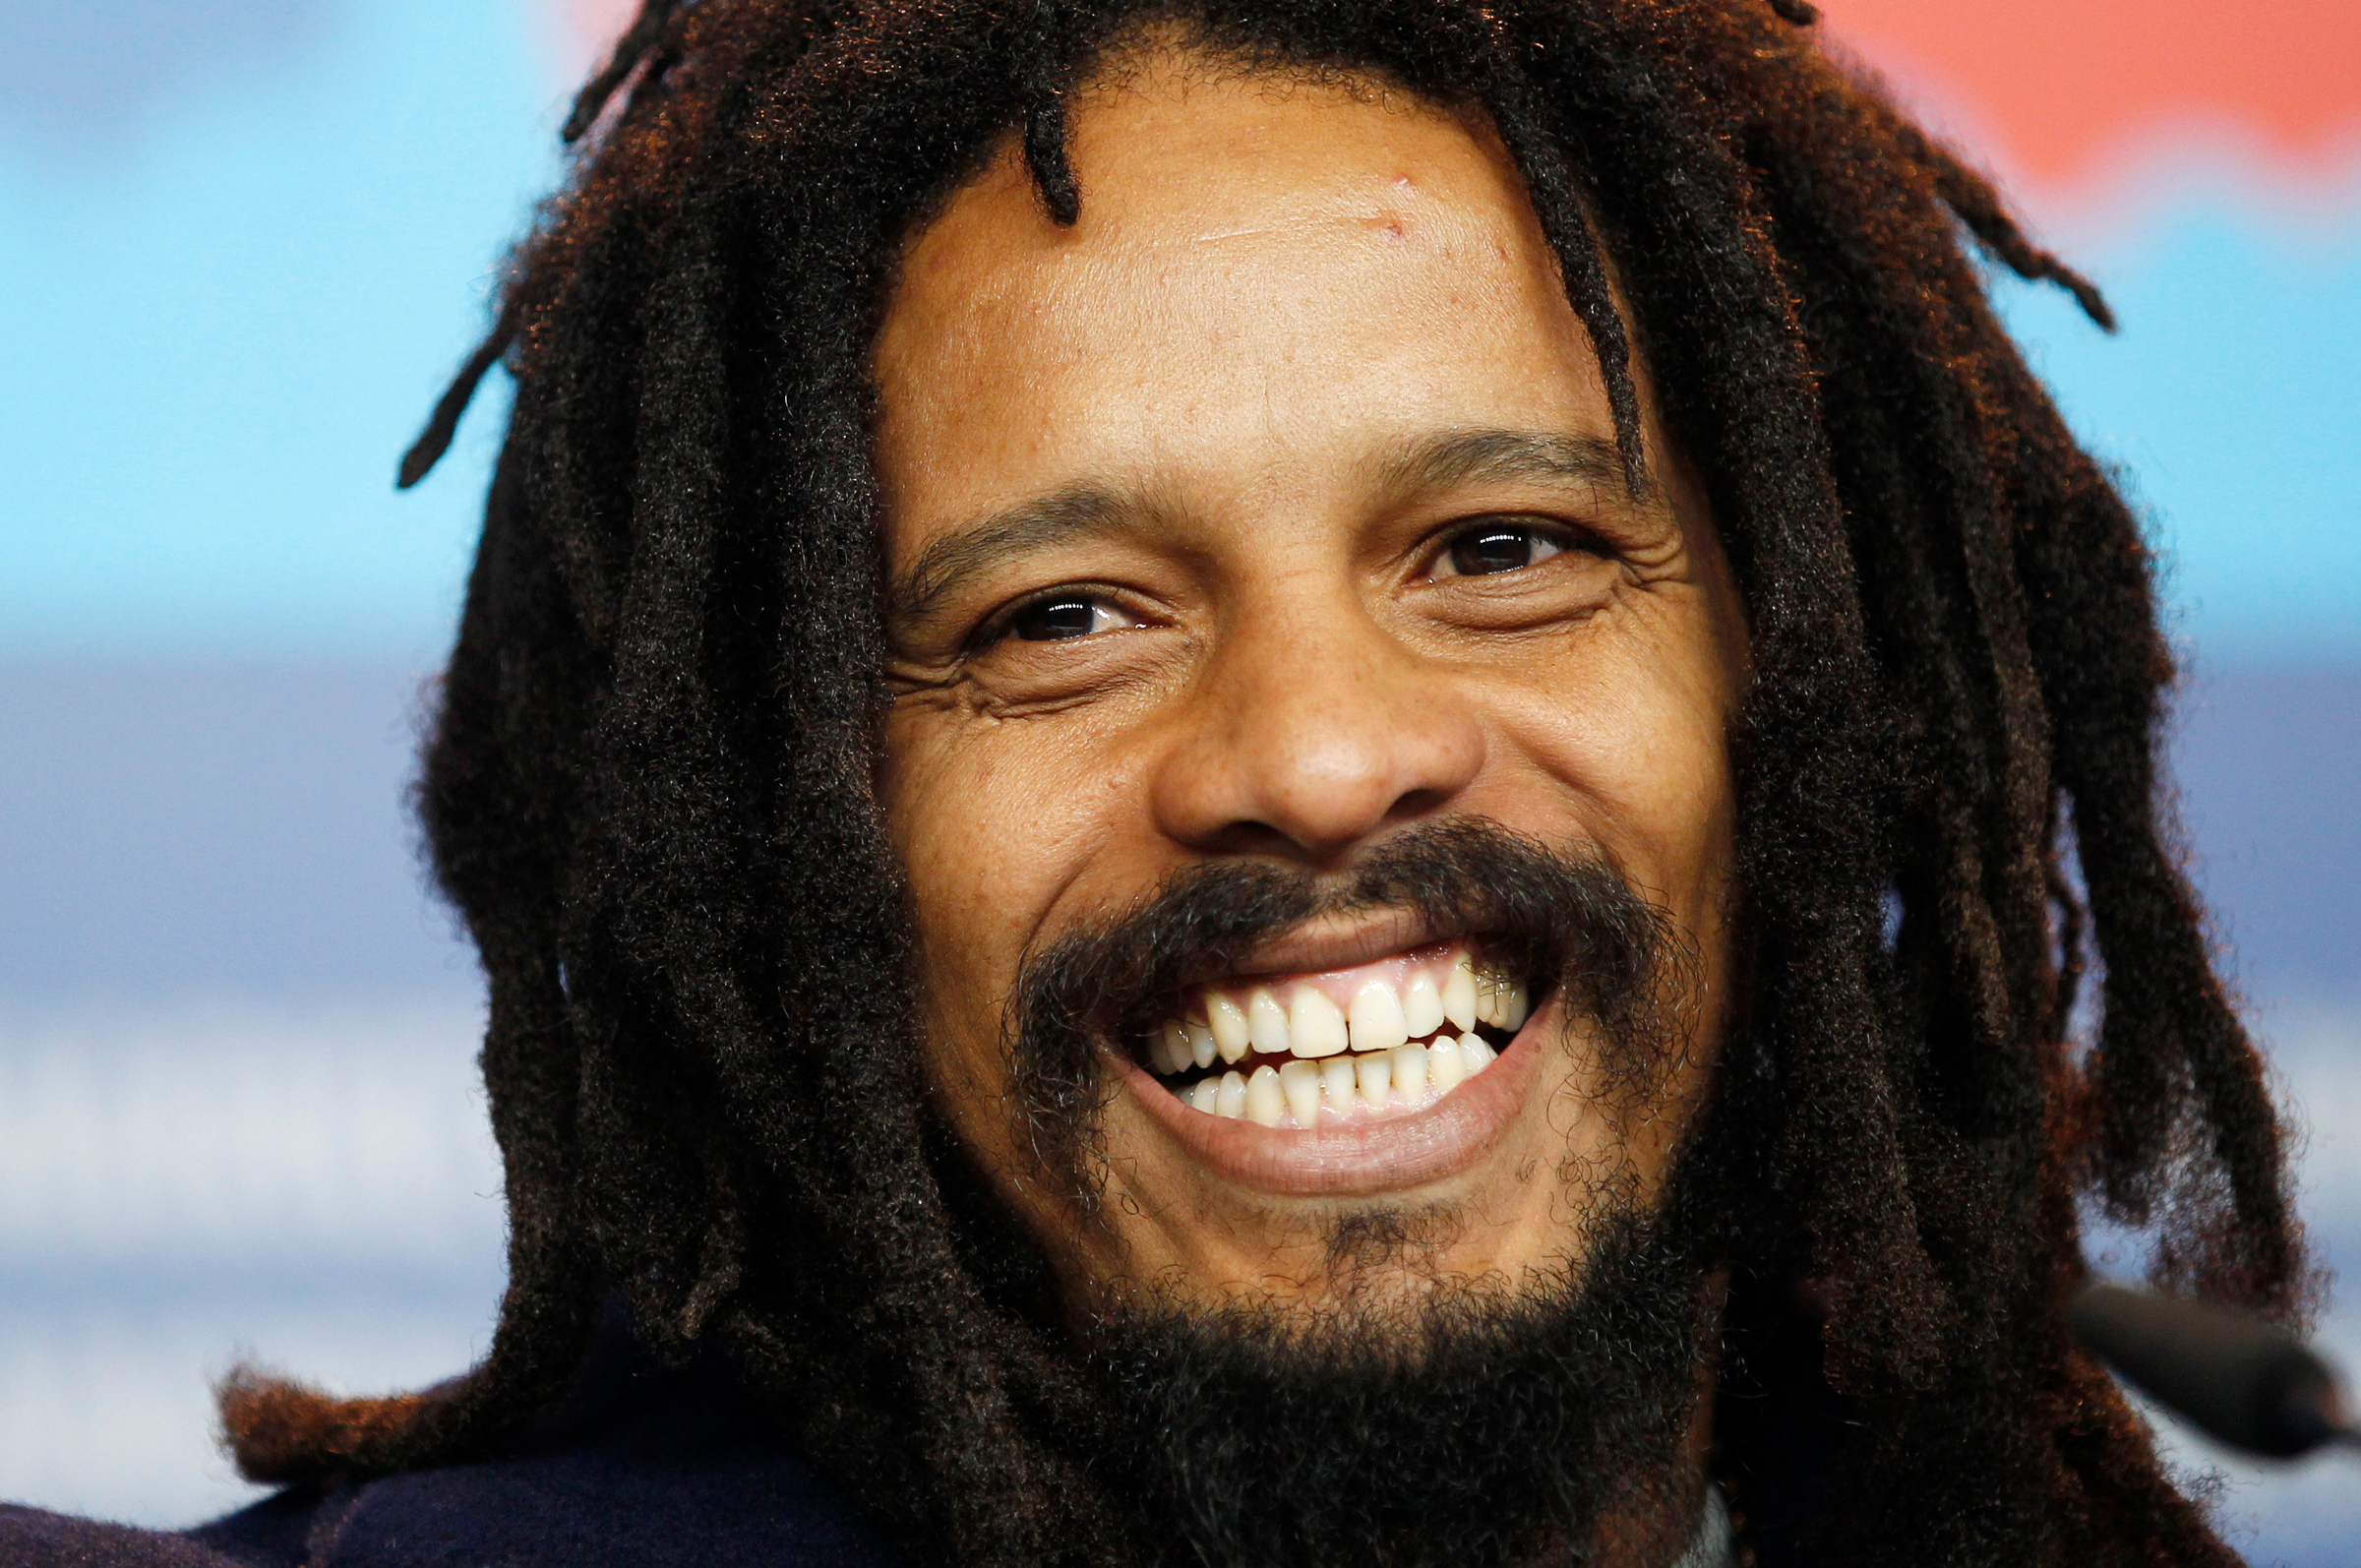 Rojan Marley Protagonist Rohan Marley smiles during the press conference for the film Marley at the 62 edition of the Berlinale, International Film Festival in BerlinGermany Berlinale Marley Photo Call, Berlin, Germany